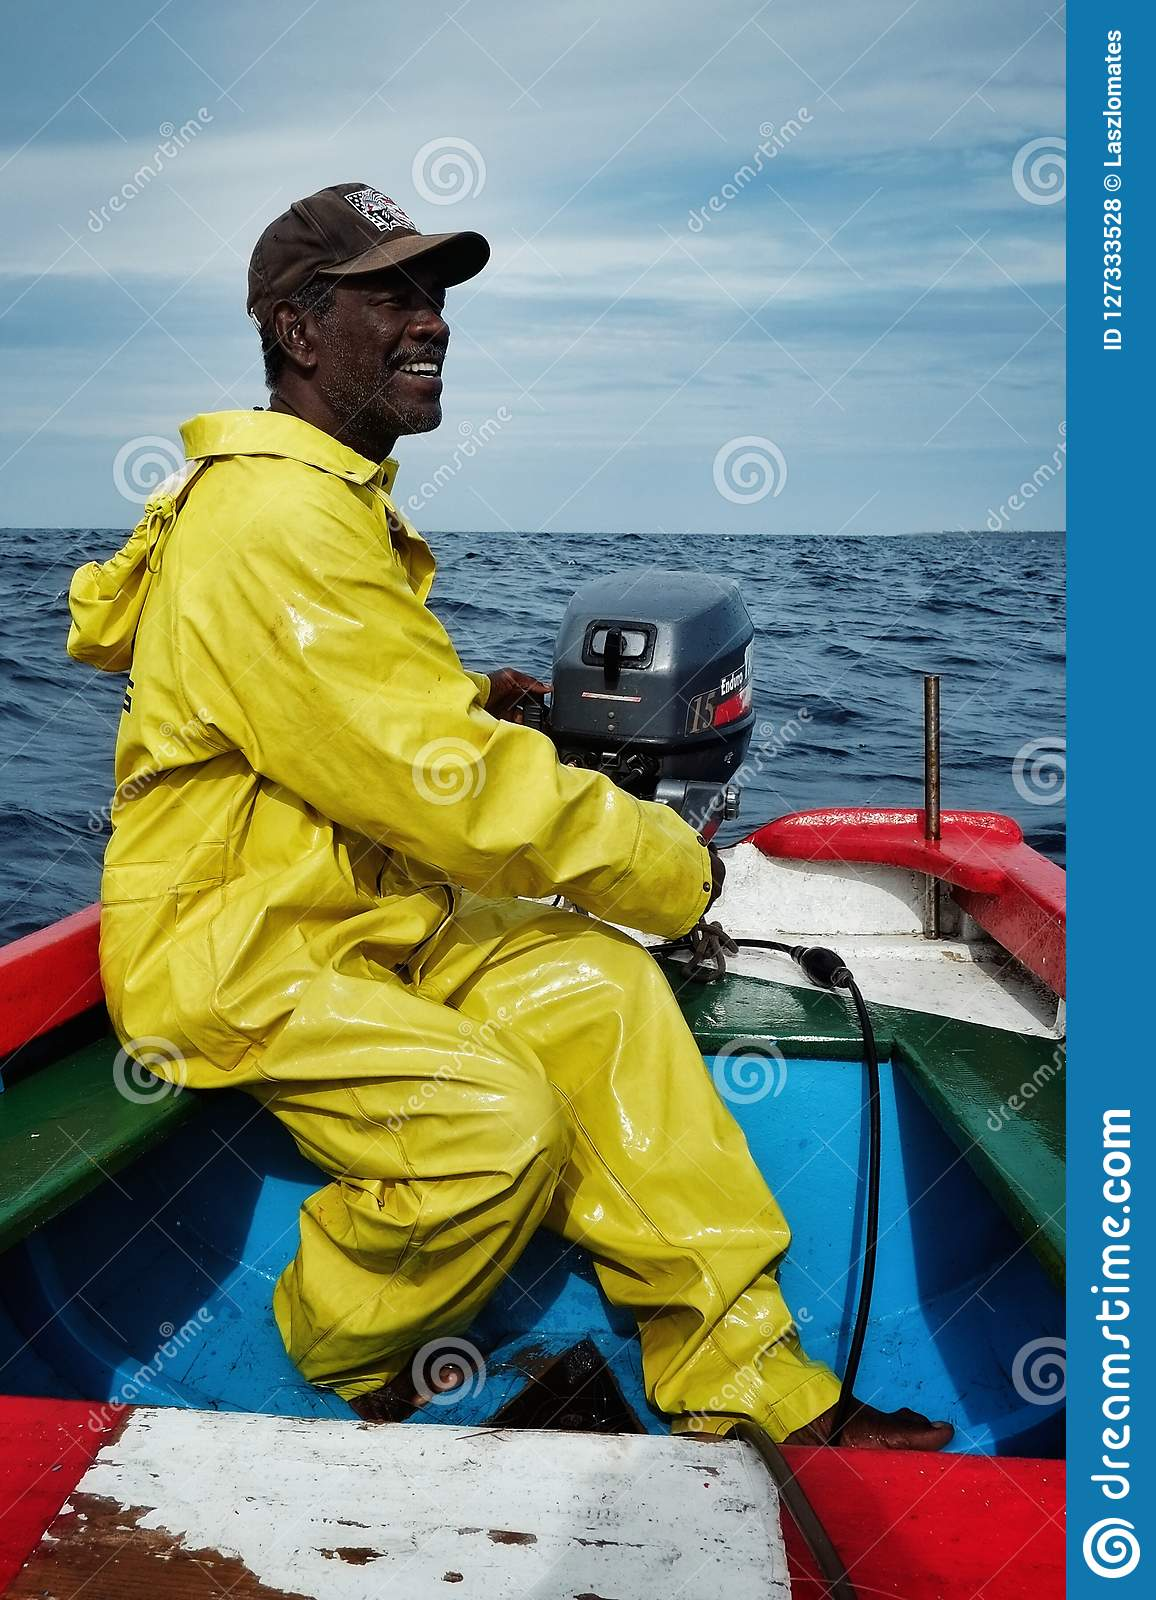 local fisherman going out to sea to fish for yellow fin tuna or wahoo in a traditional colorful dinghy